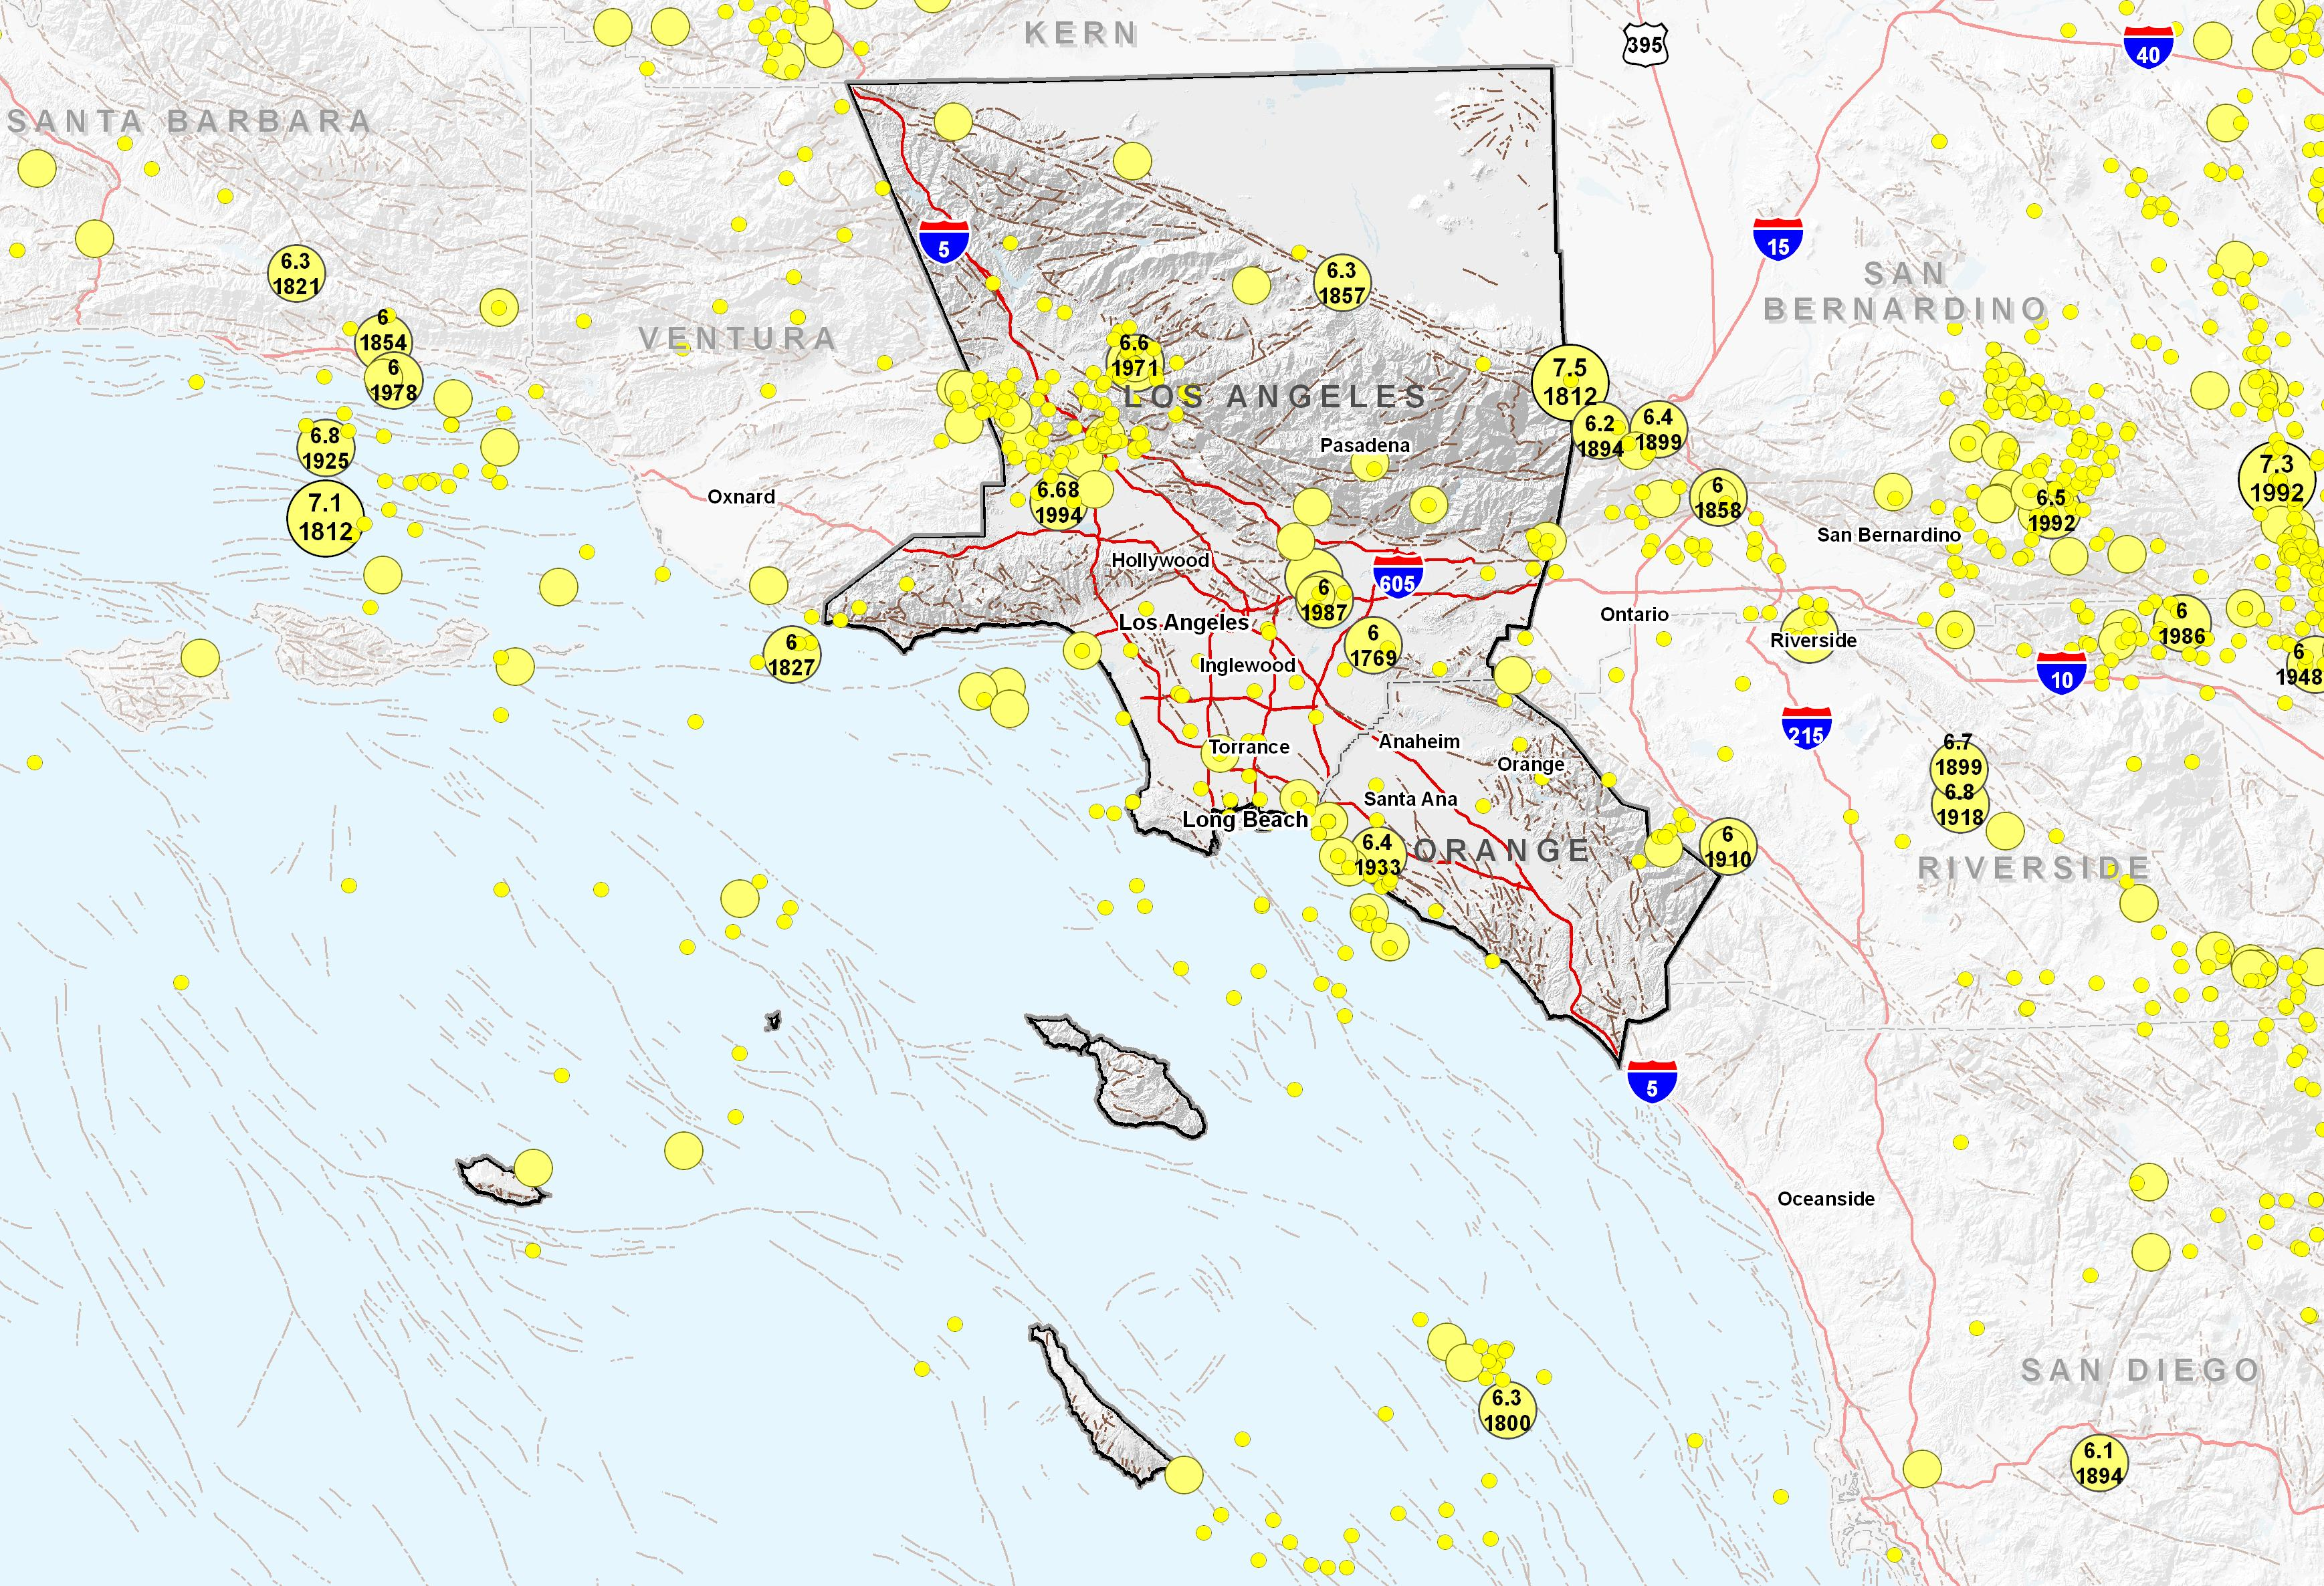 Southern California Coast Area Epicenters and Faults